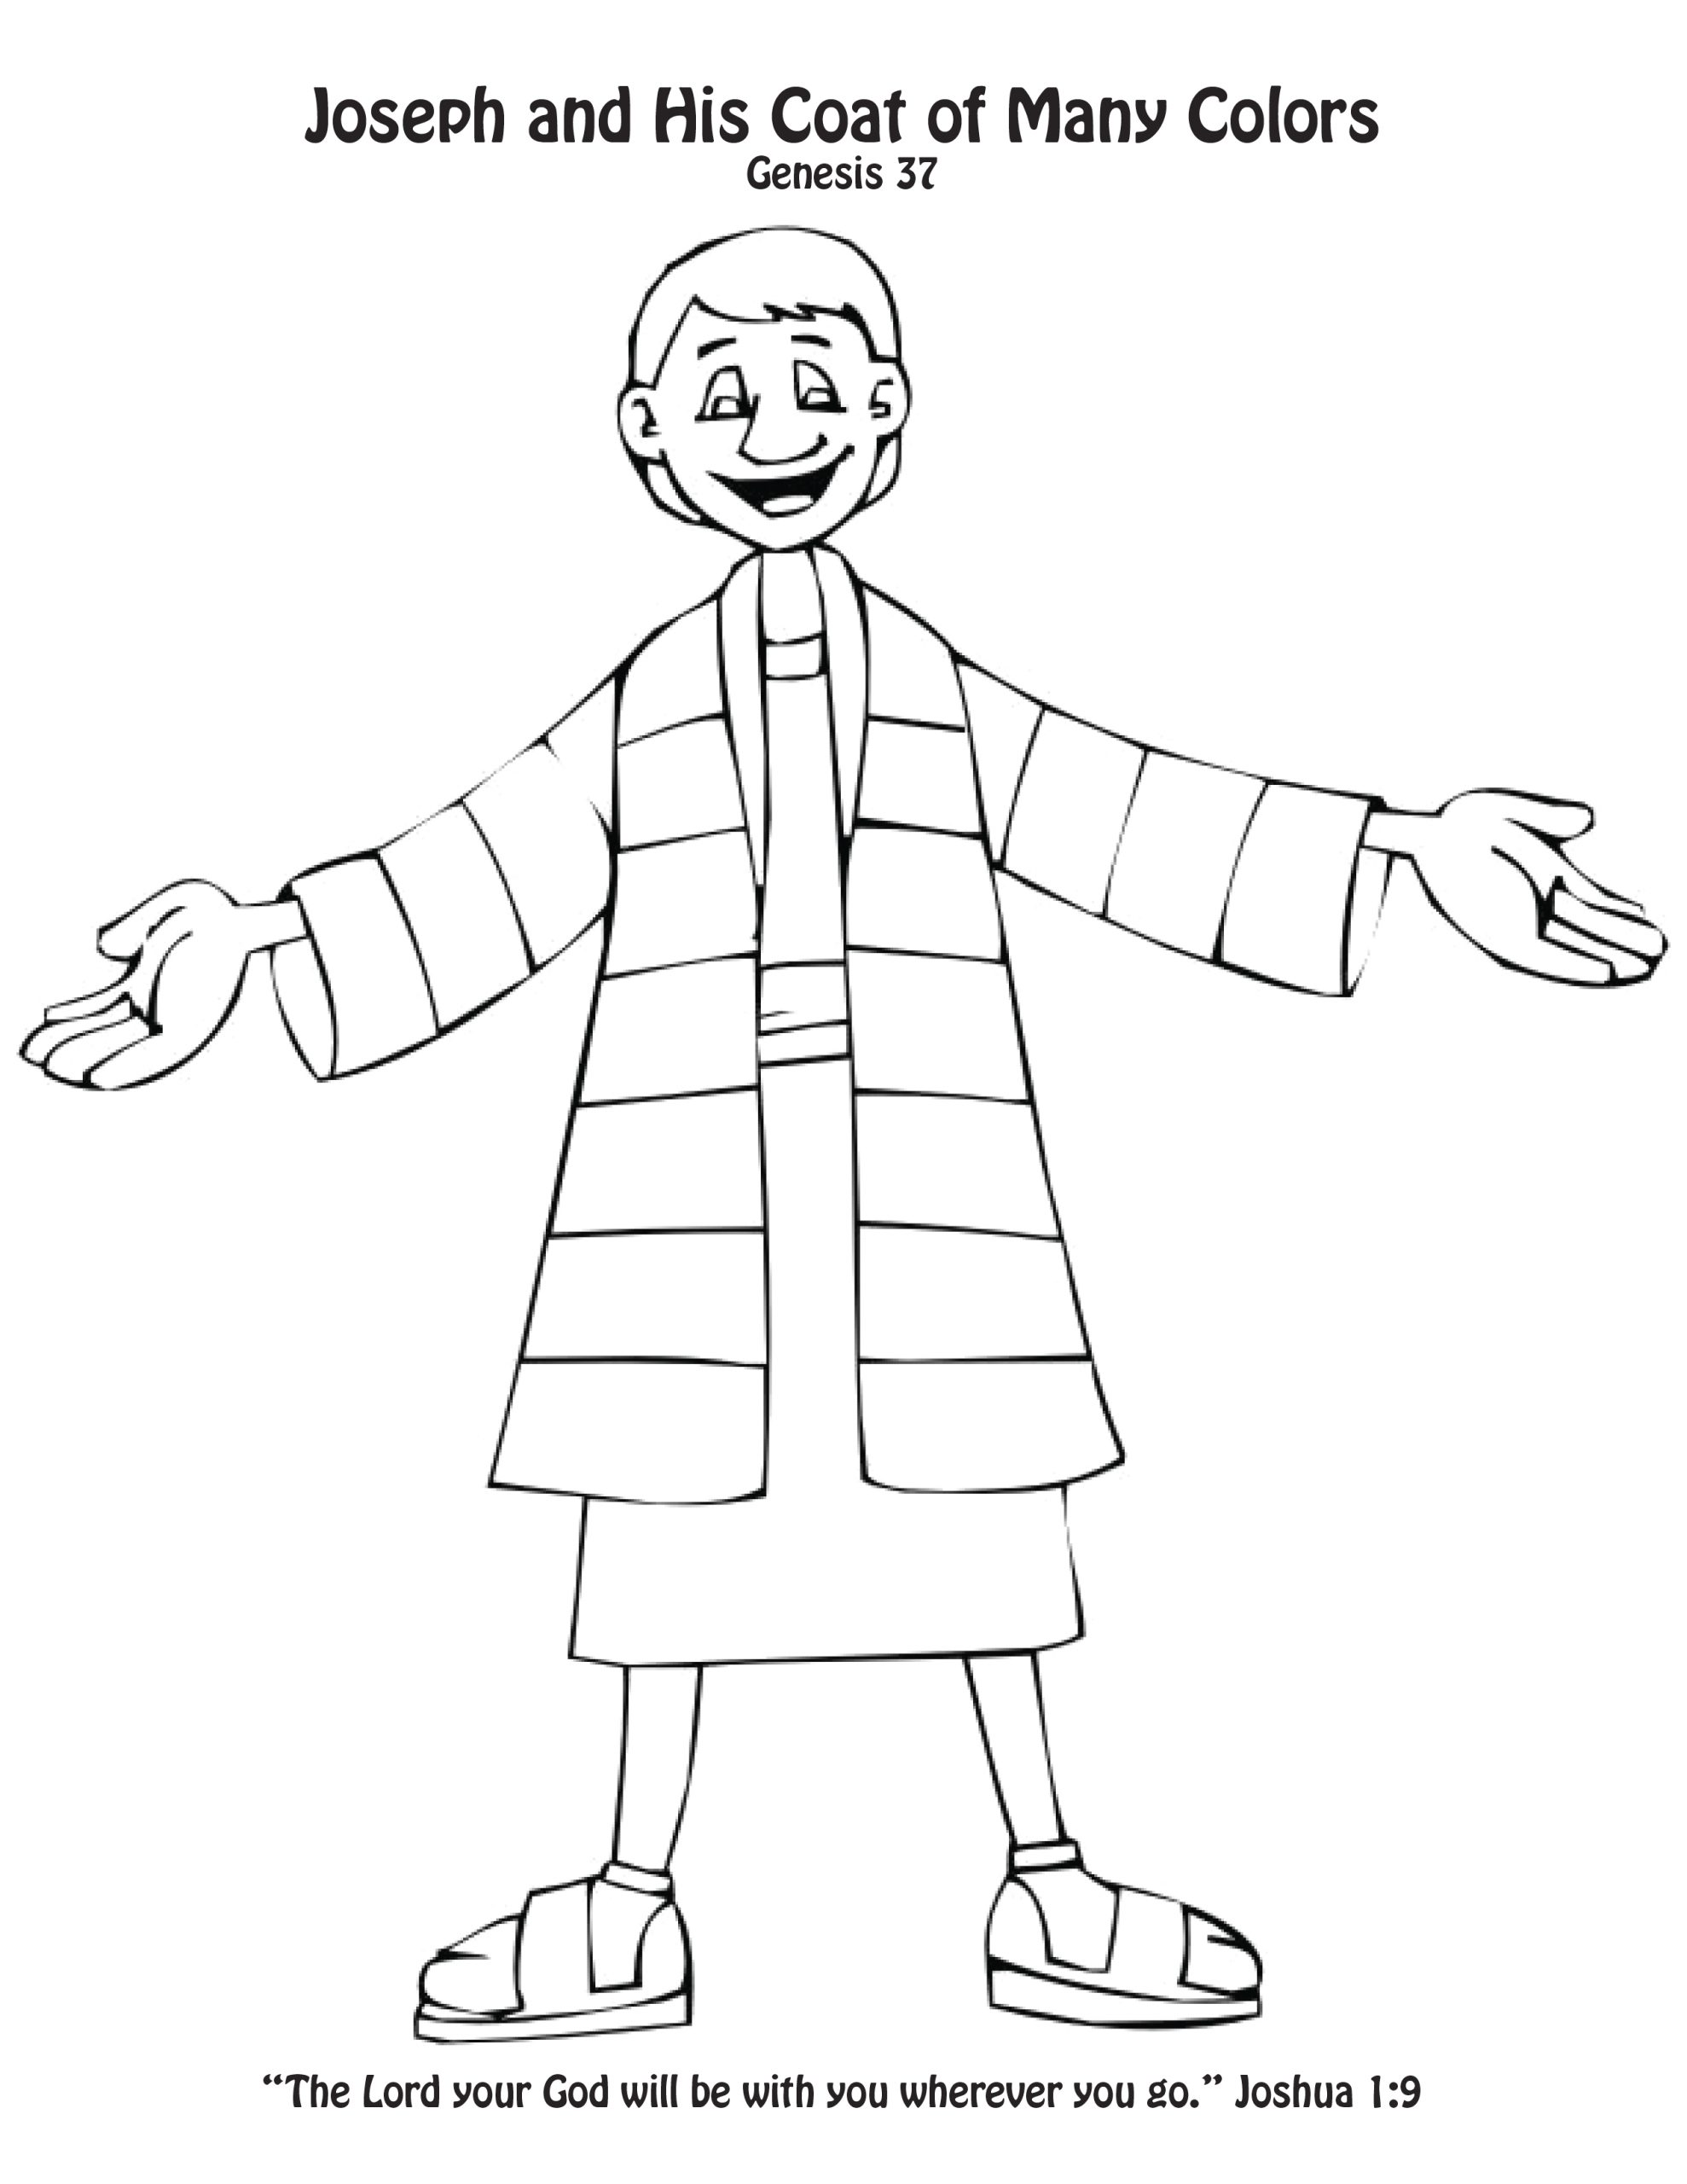 Free Coloring Pages Joseph Coat Many Colors Joseph Coat Many Colors Coloring Page at Getcolorings